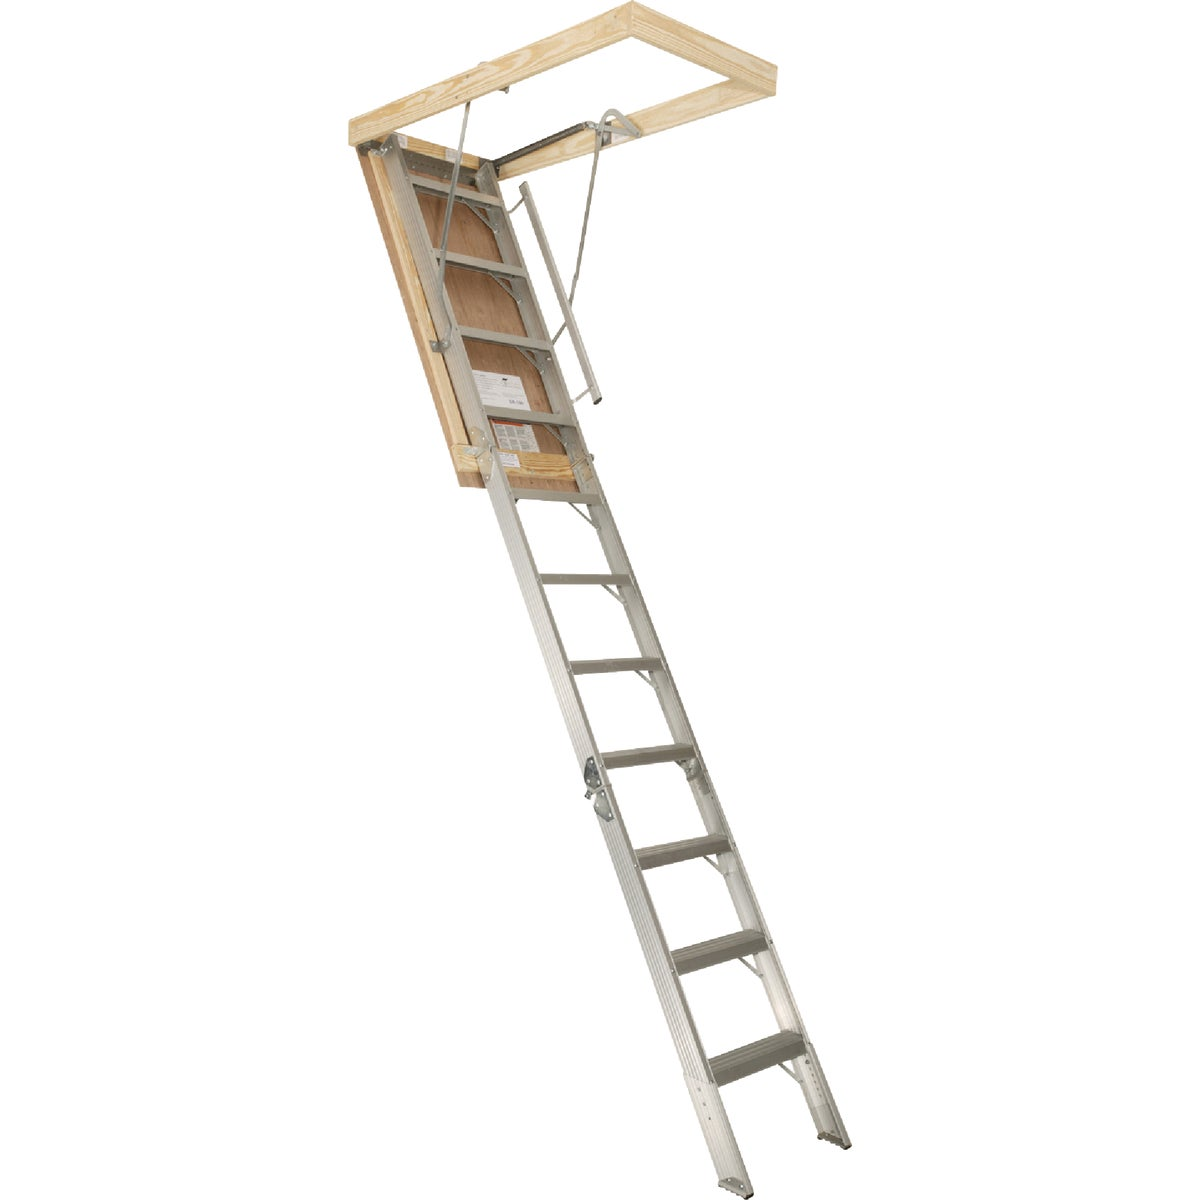 22X120 SUPRE ATTIC STAIR - SAT100 by Century Stairs